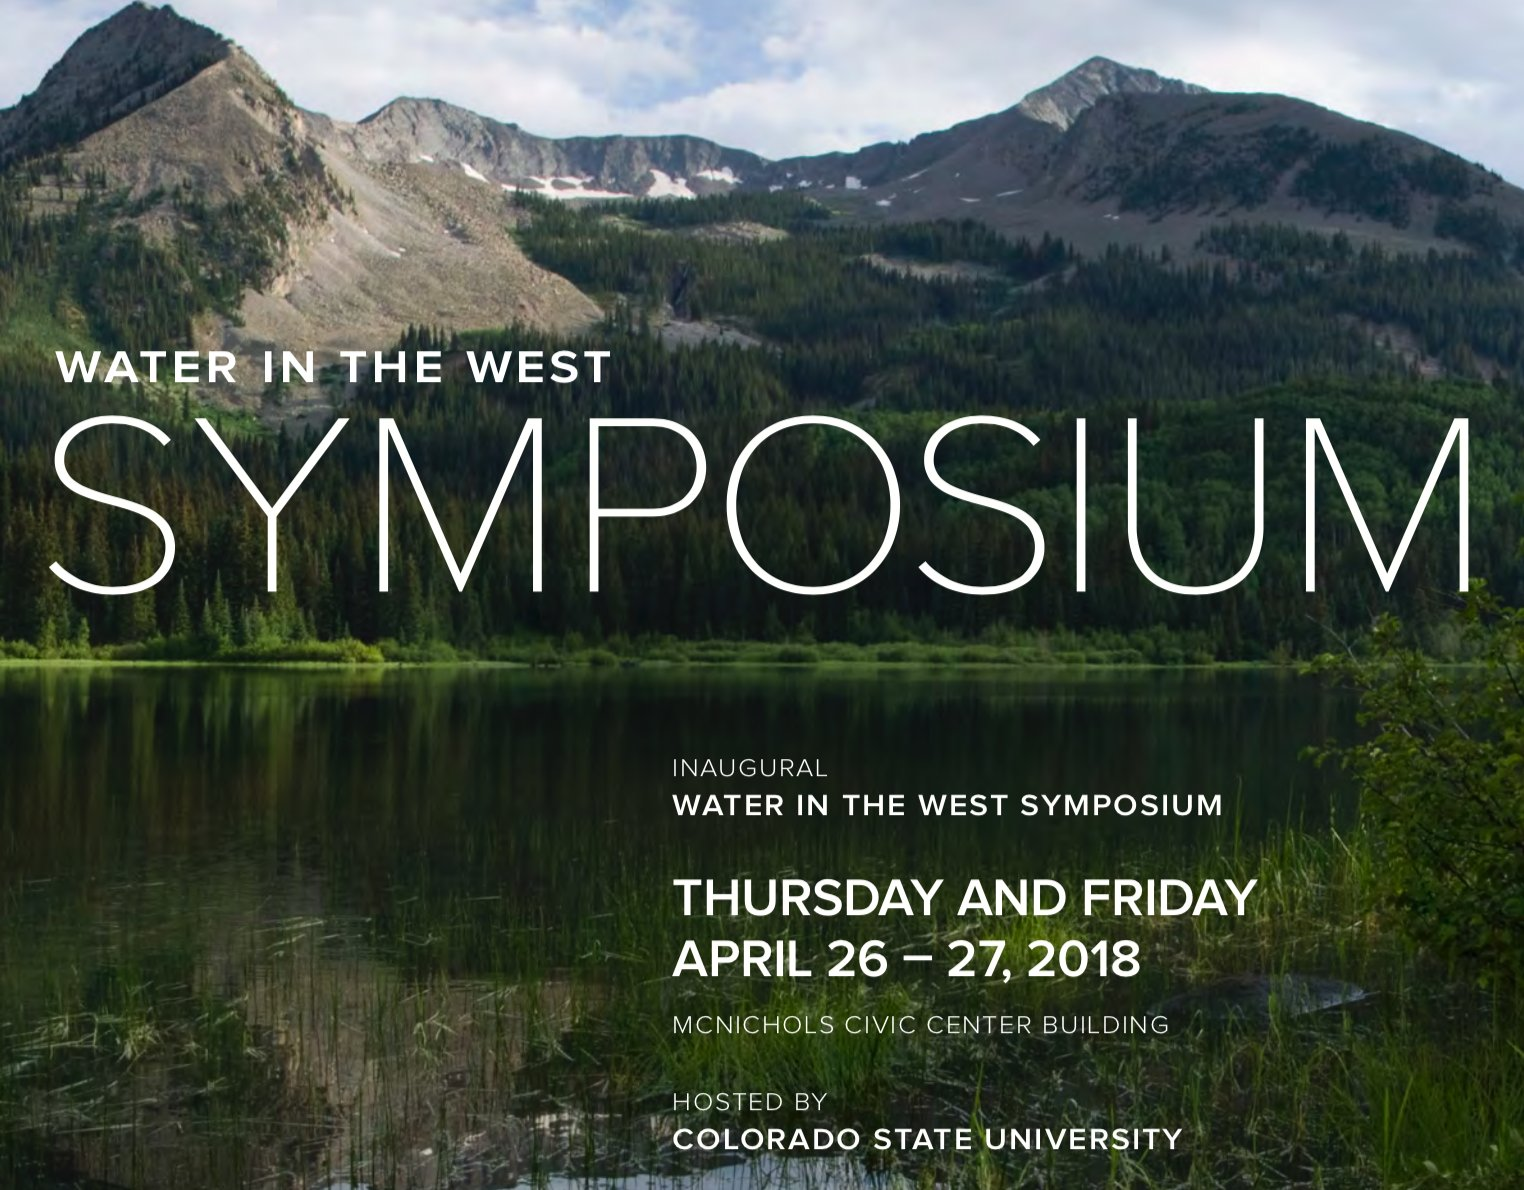 Inaugural Water in the West Symposium Presenter -